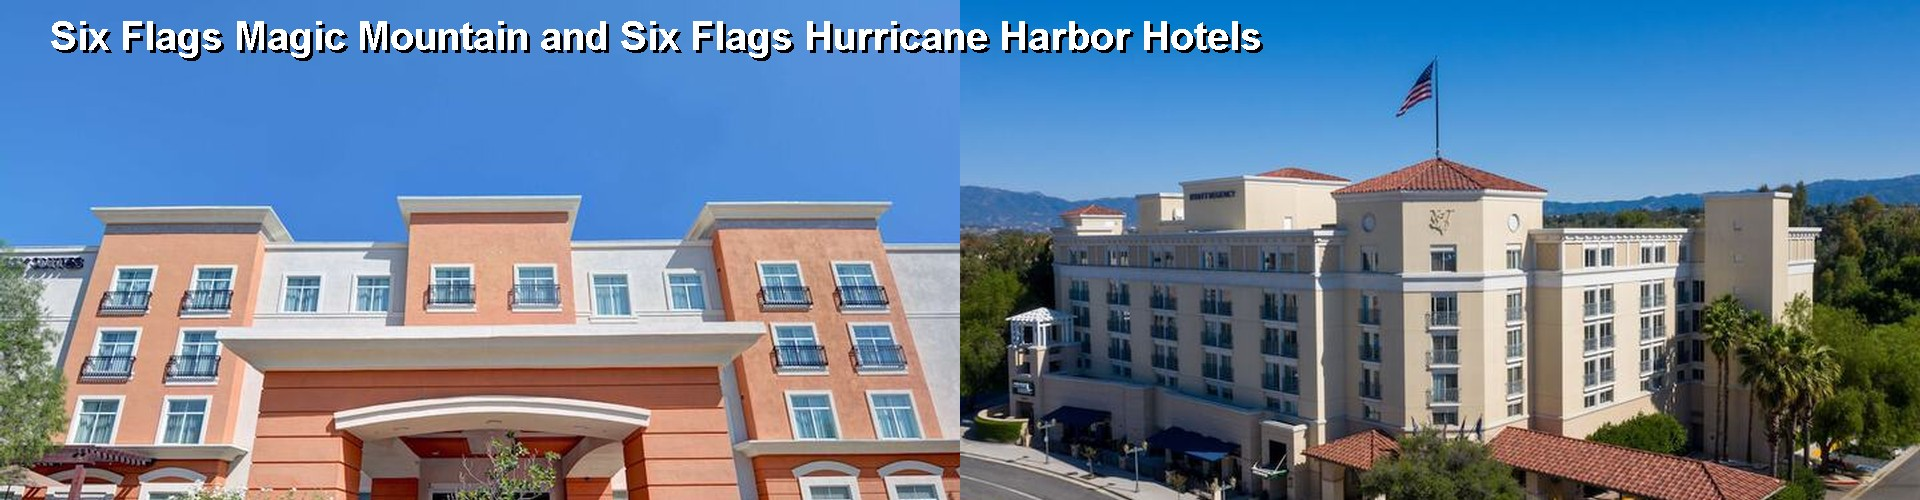 5 Best Hotels Near Six Flags Magic Mountain And Hurricane Harbor